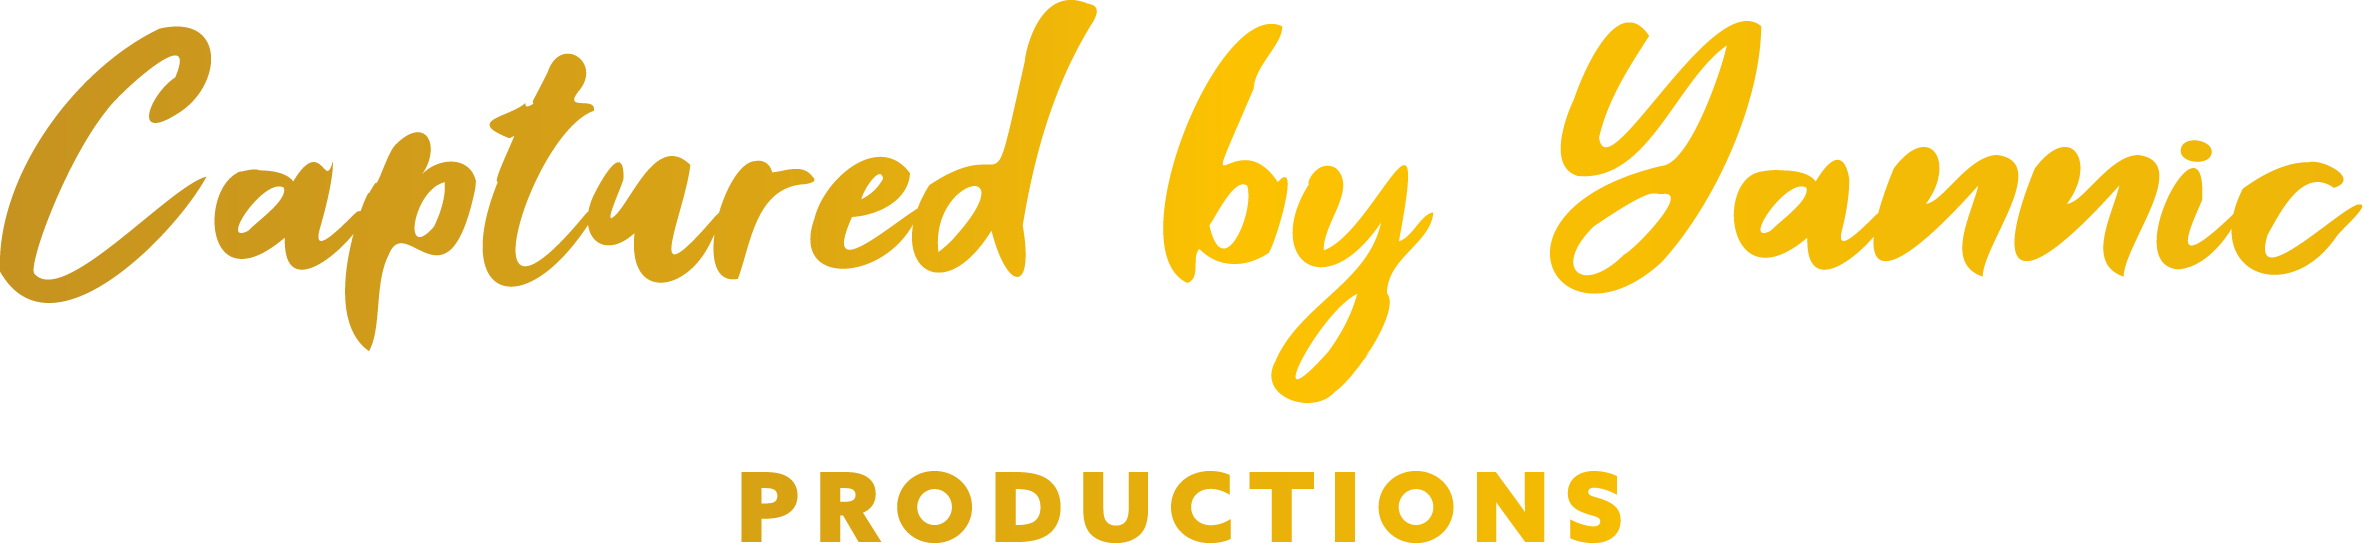 Gold_CBYProductions